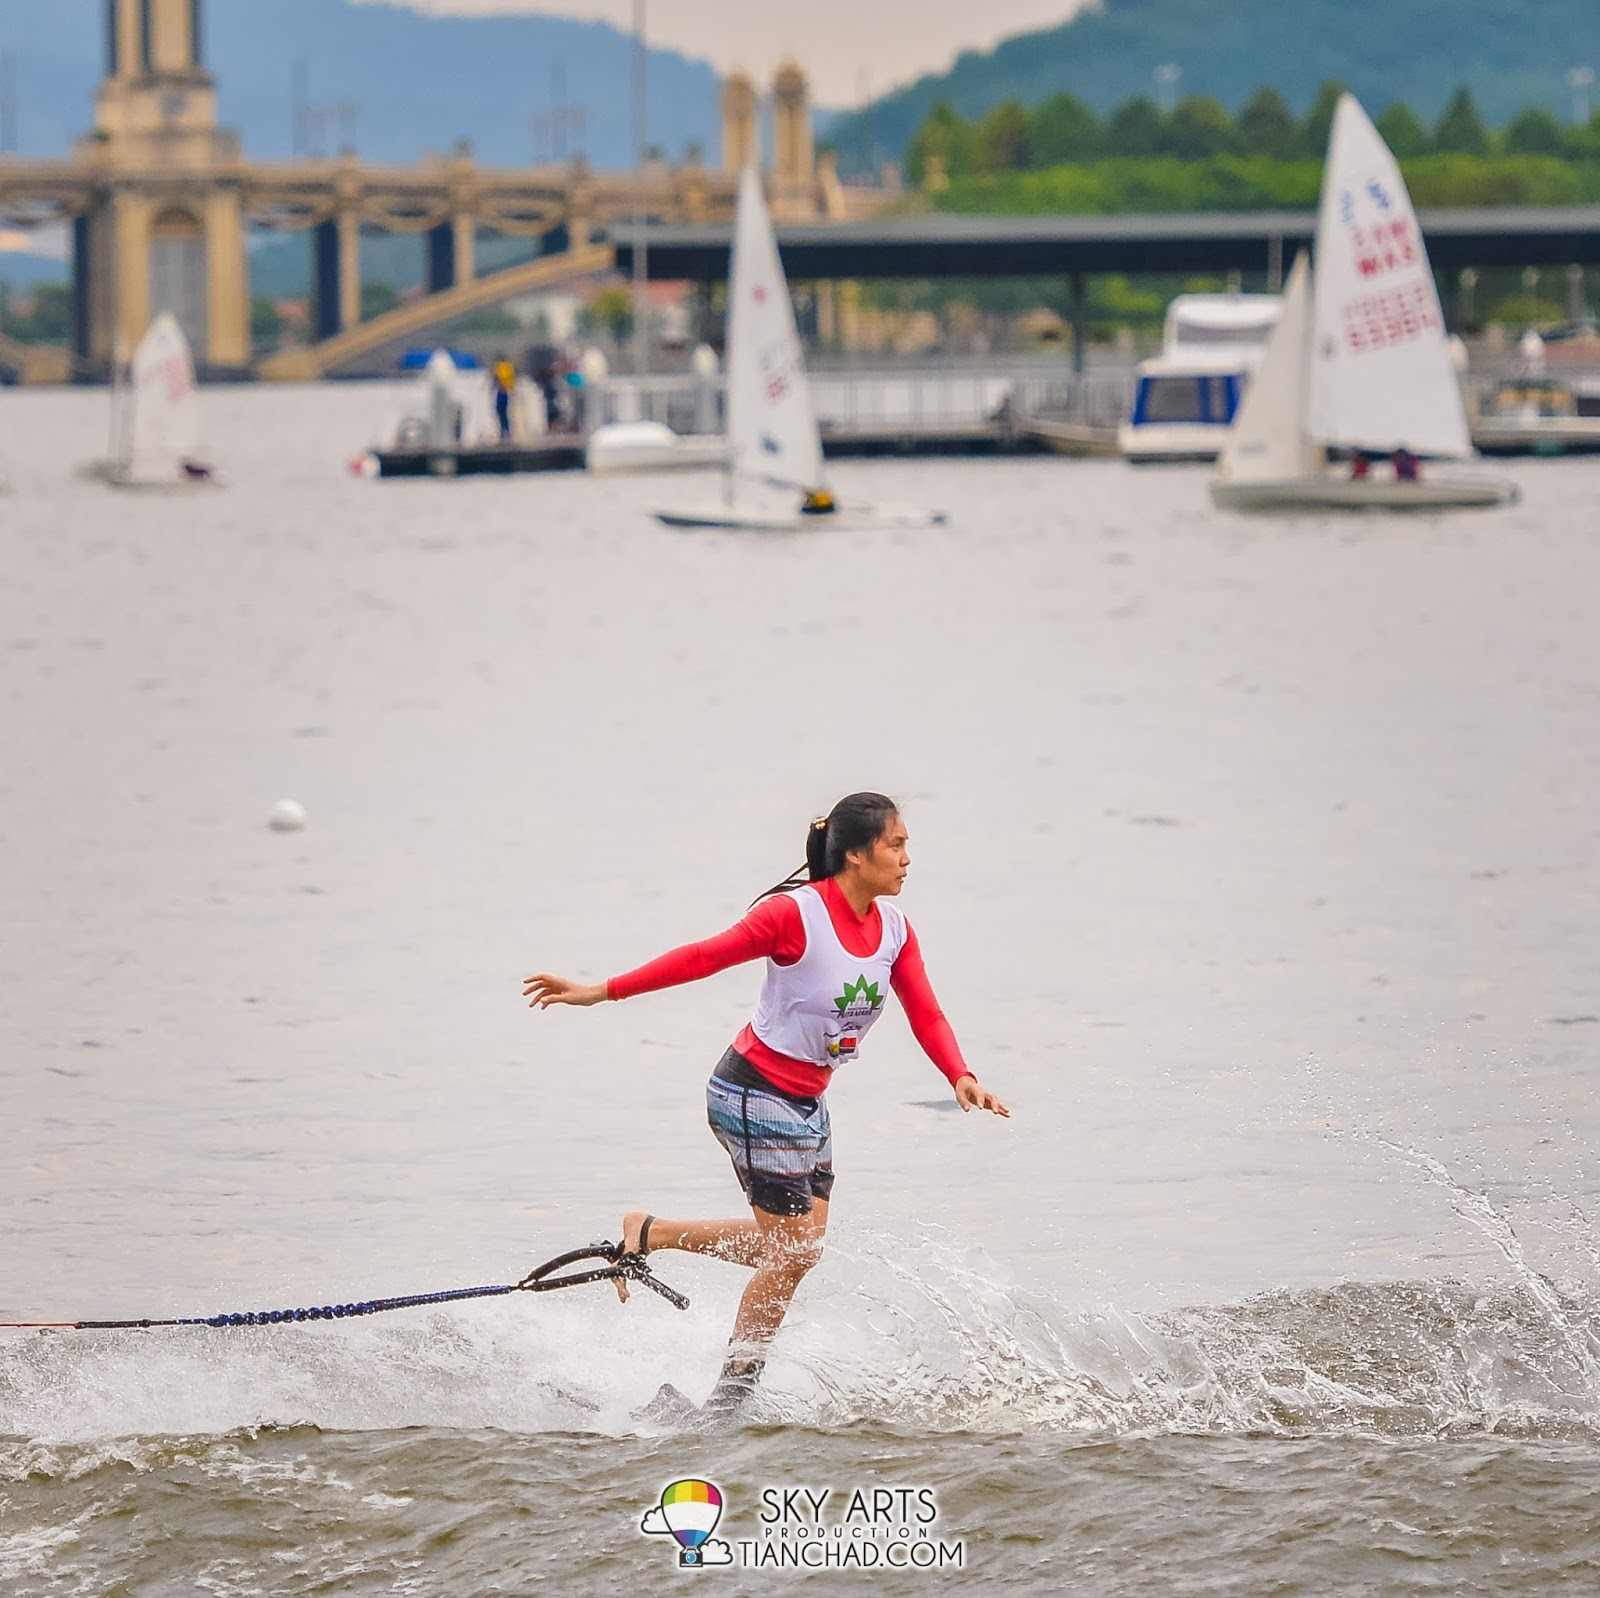 Putrajaya Waterski and Wakeboard Championship contestant doing their best to impress the judges